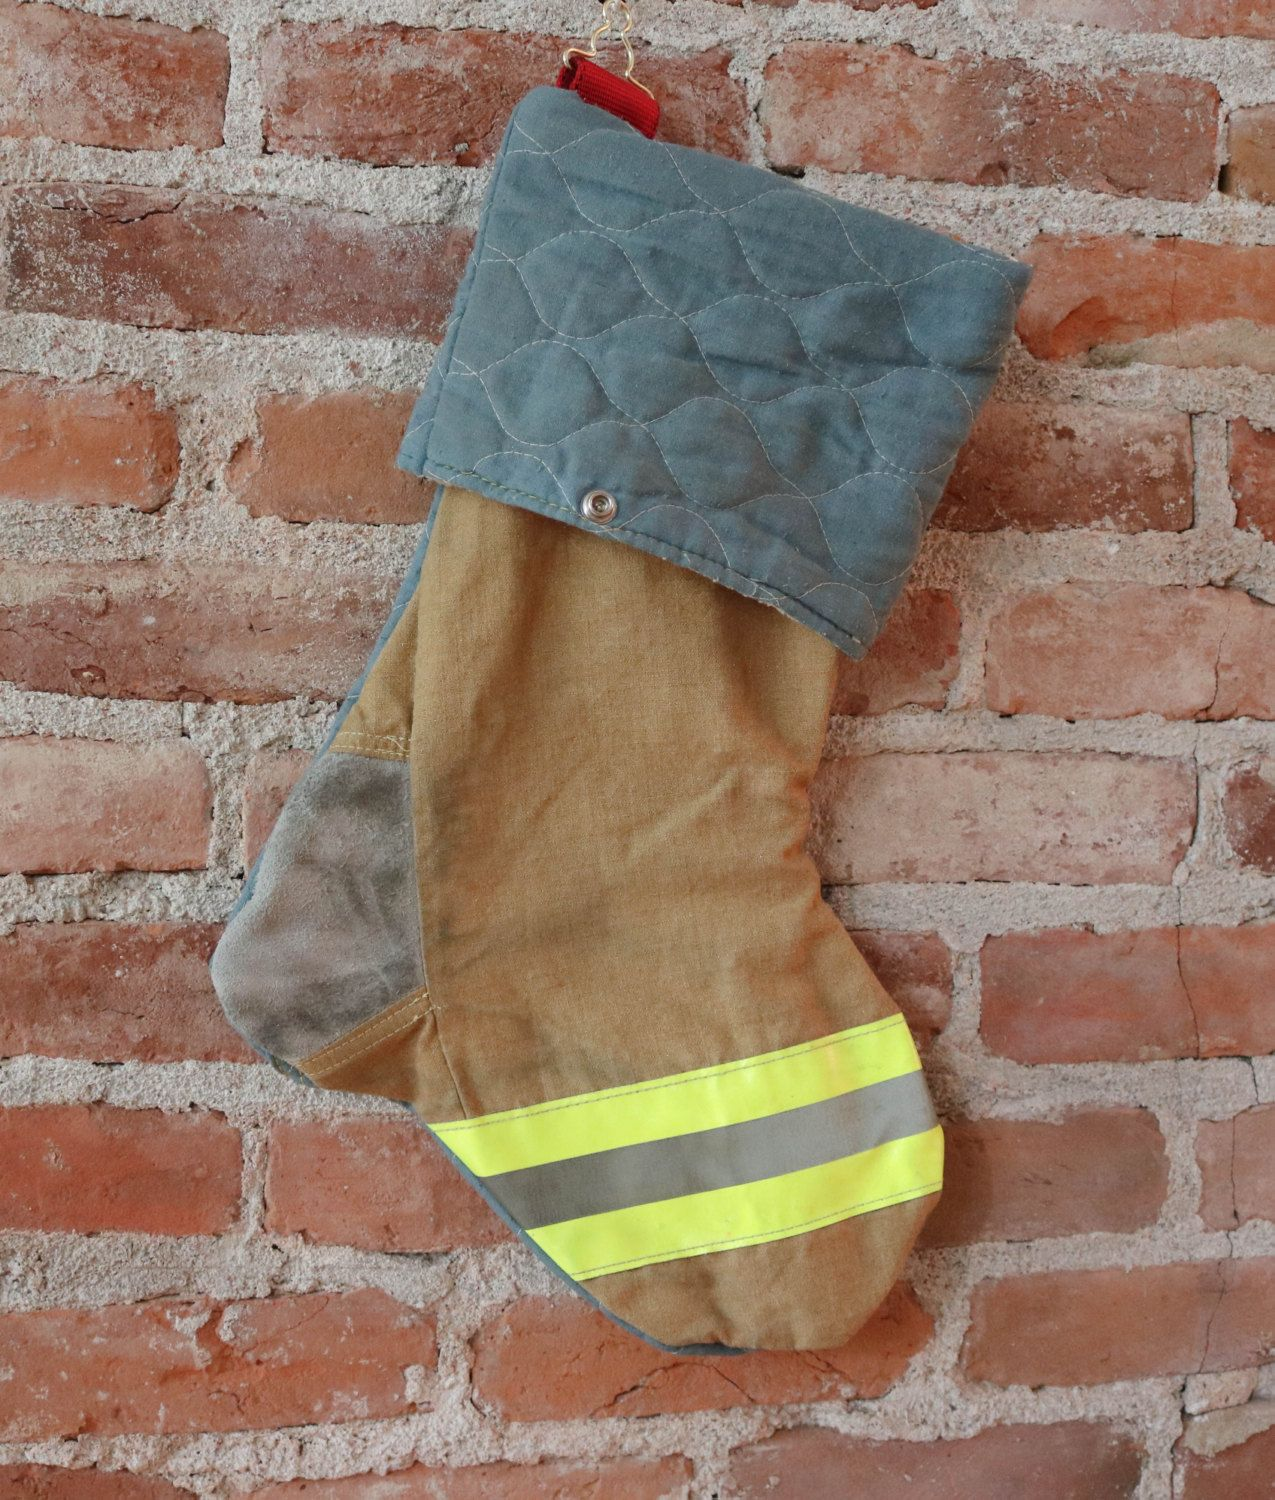 Firefighter Christmas Stocking.Recycled Firefighter Christmas Stocking Recycled